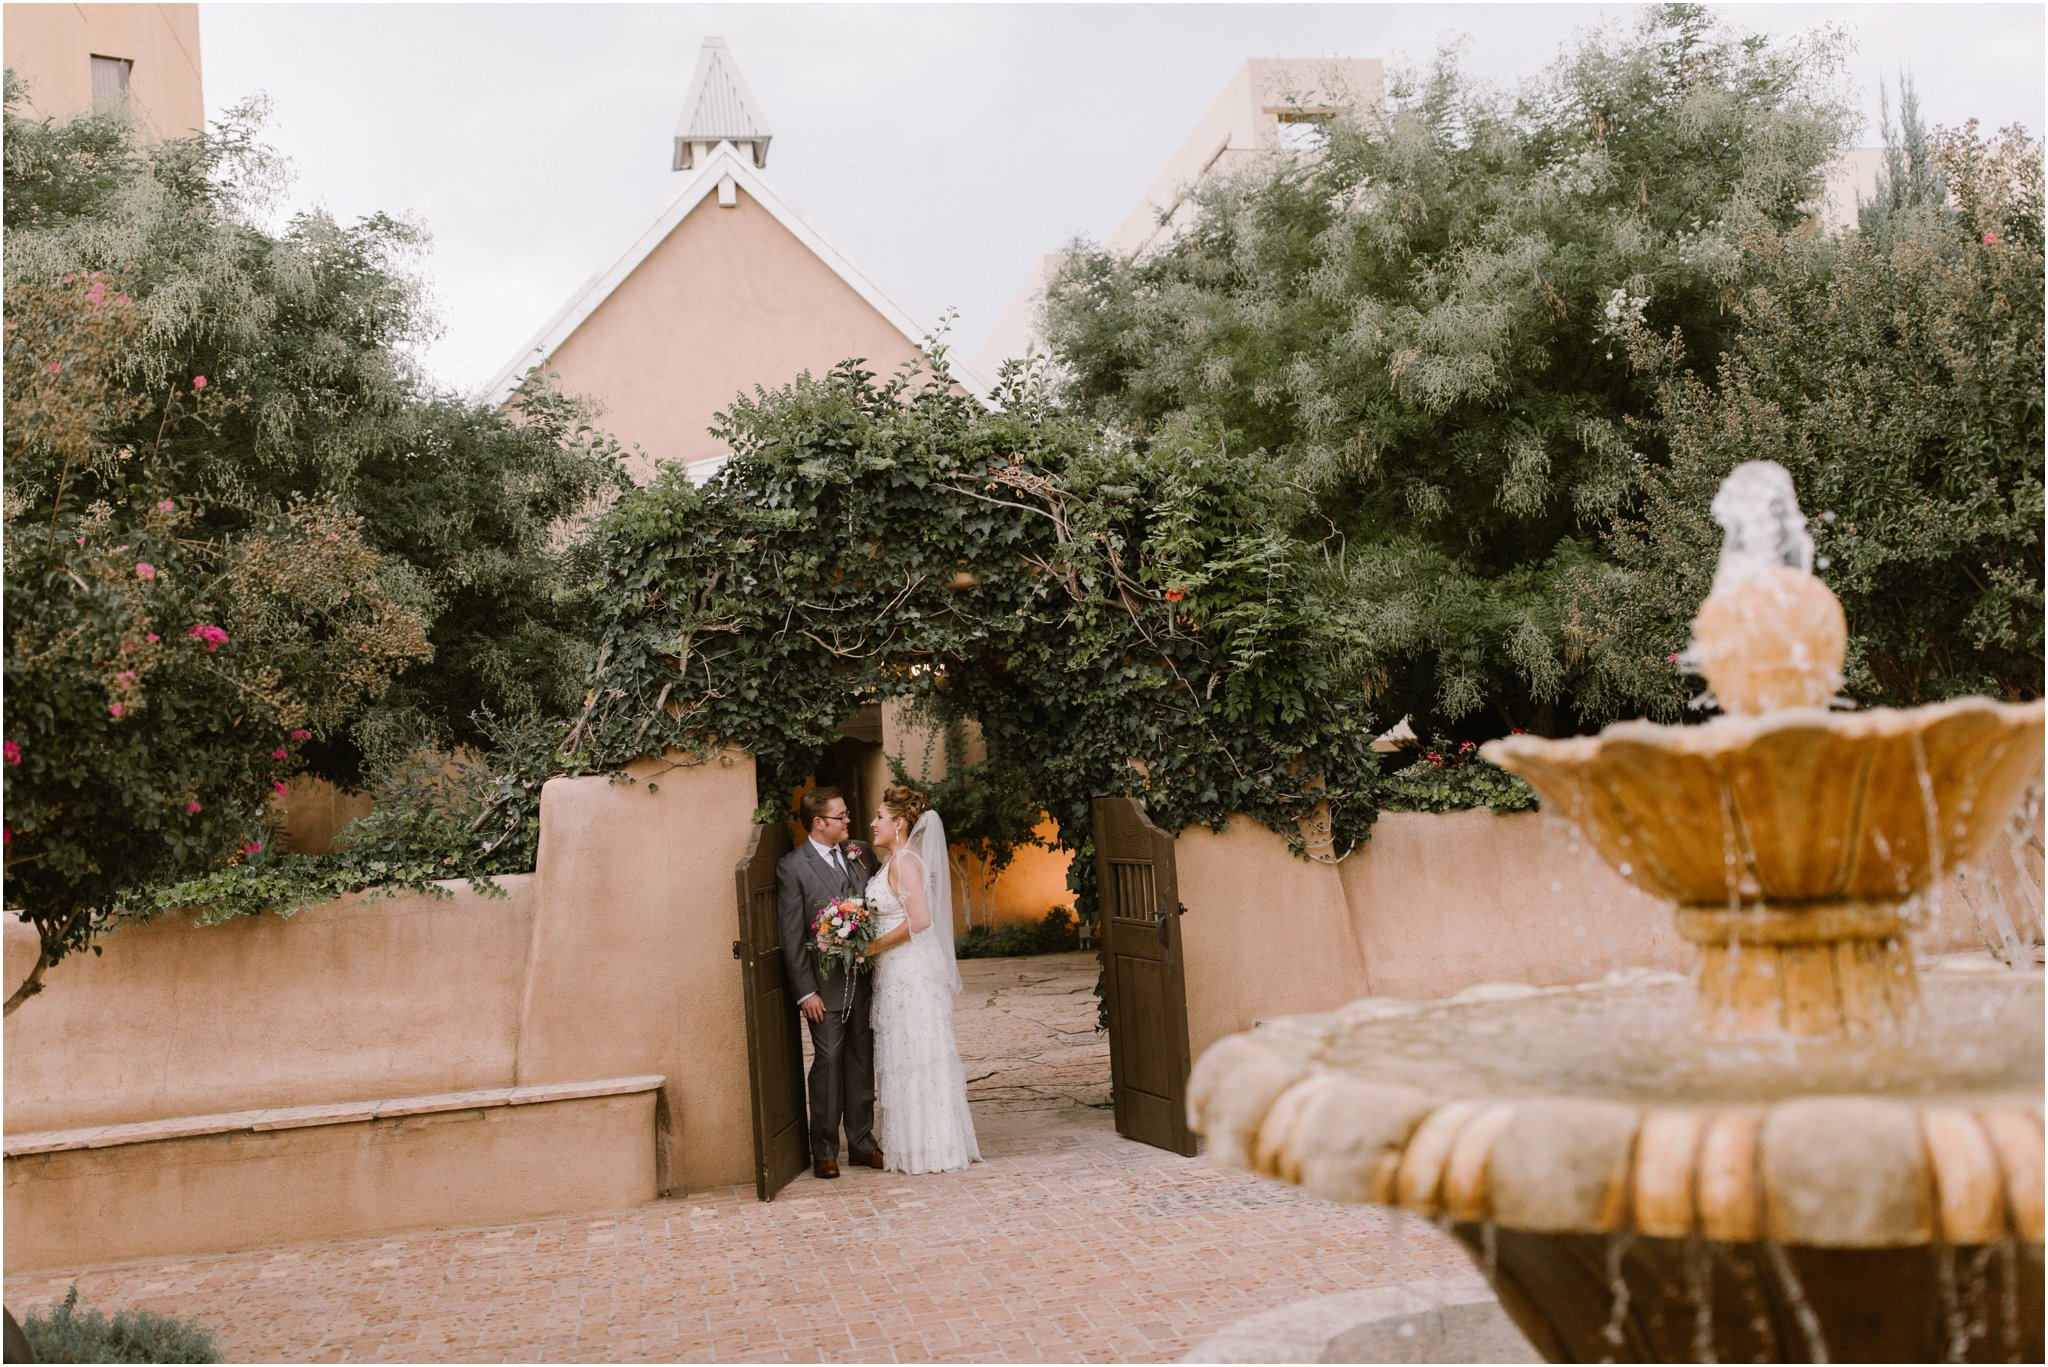 0026Hotel Albuquerque Wedding, Inn and Spa at Loretto wedding, Santa Fe wedding photographers, blue rose photography